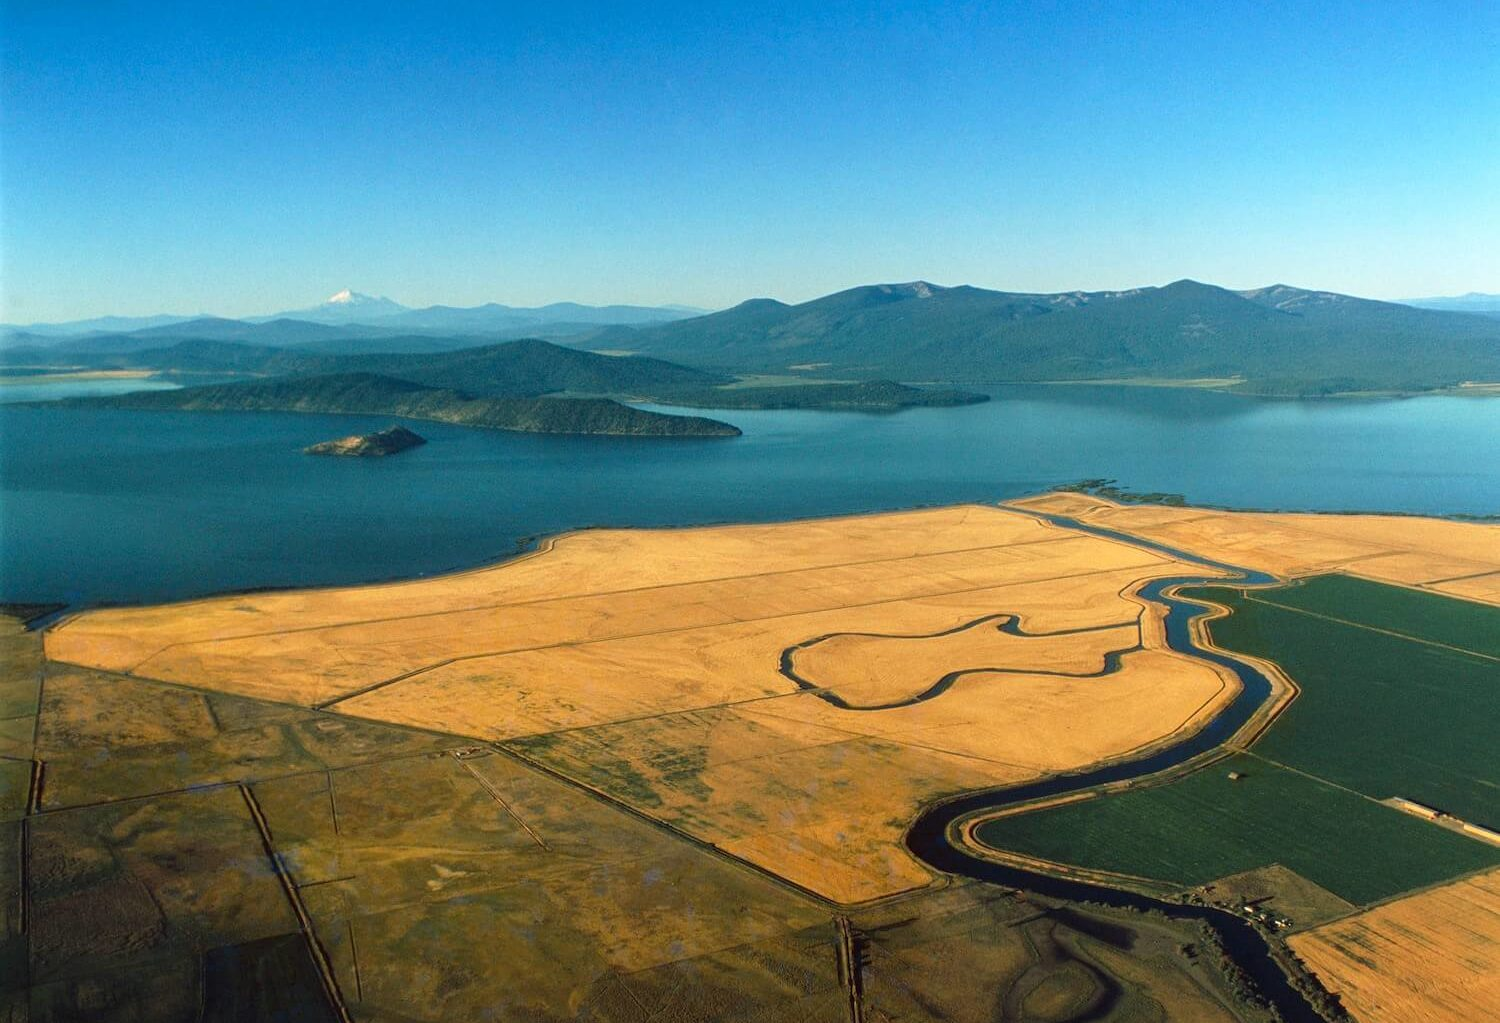 Aerial view of wheat fields along the shores of Klamath Lake - Oregon, United States of America. May 2021